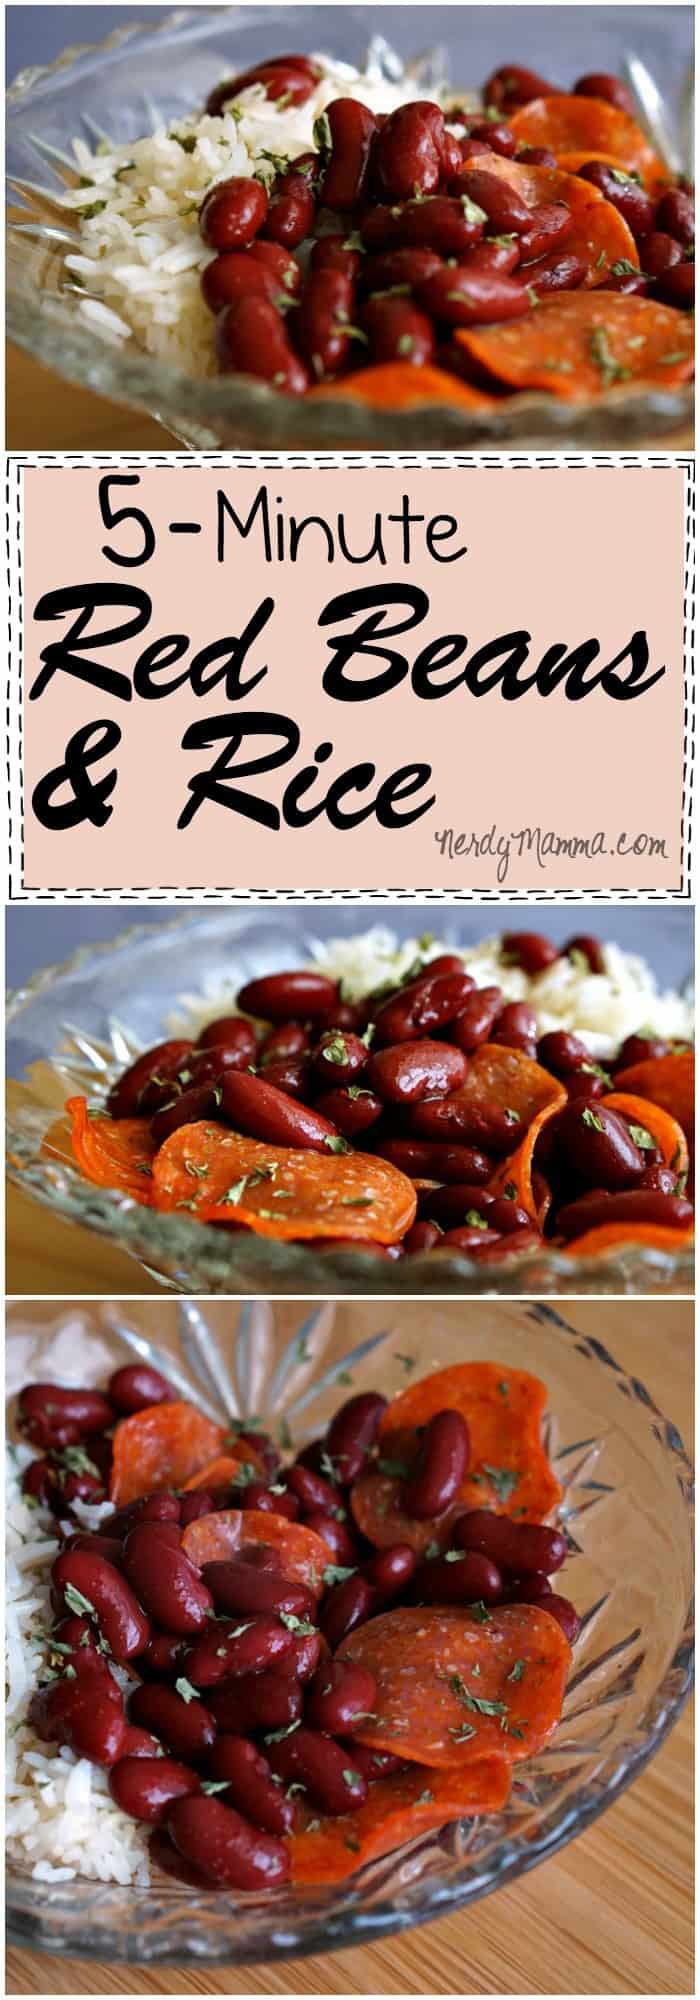 This recipe for 5-Minute Red Beans and Rice is so FAST. Love it!